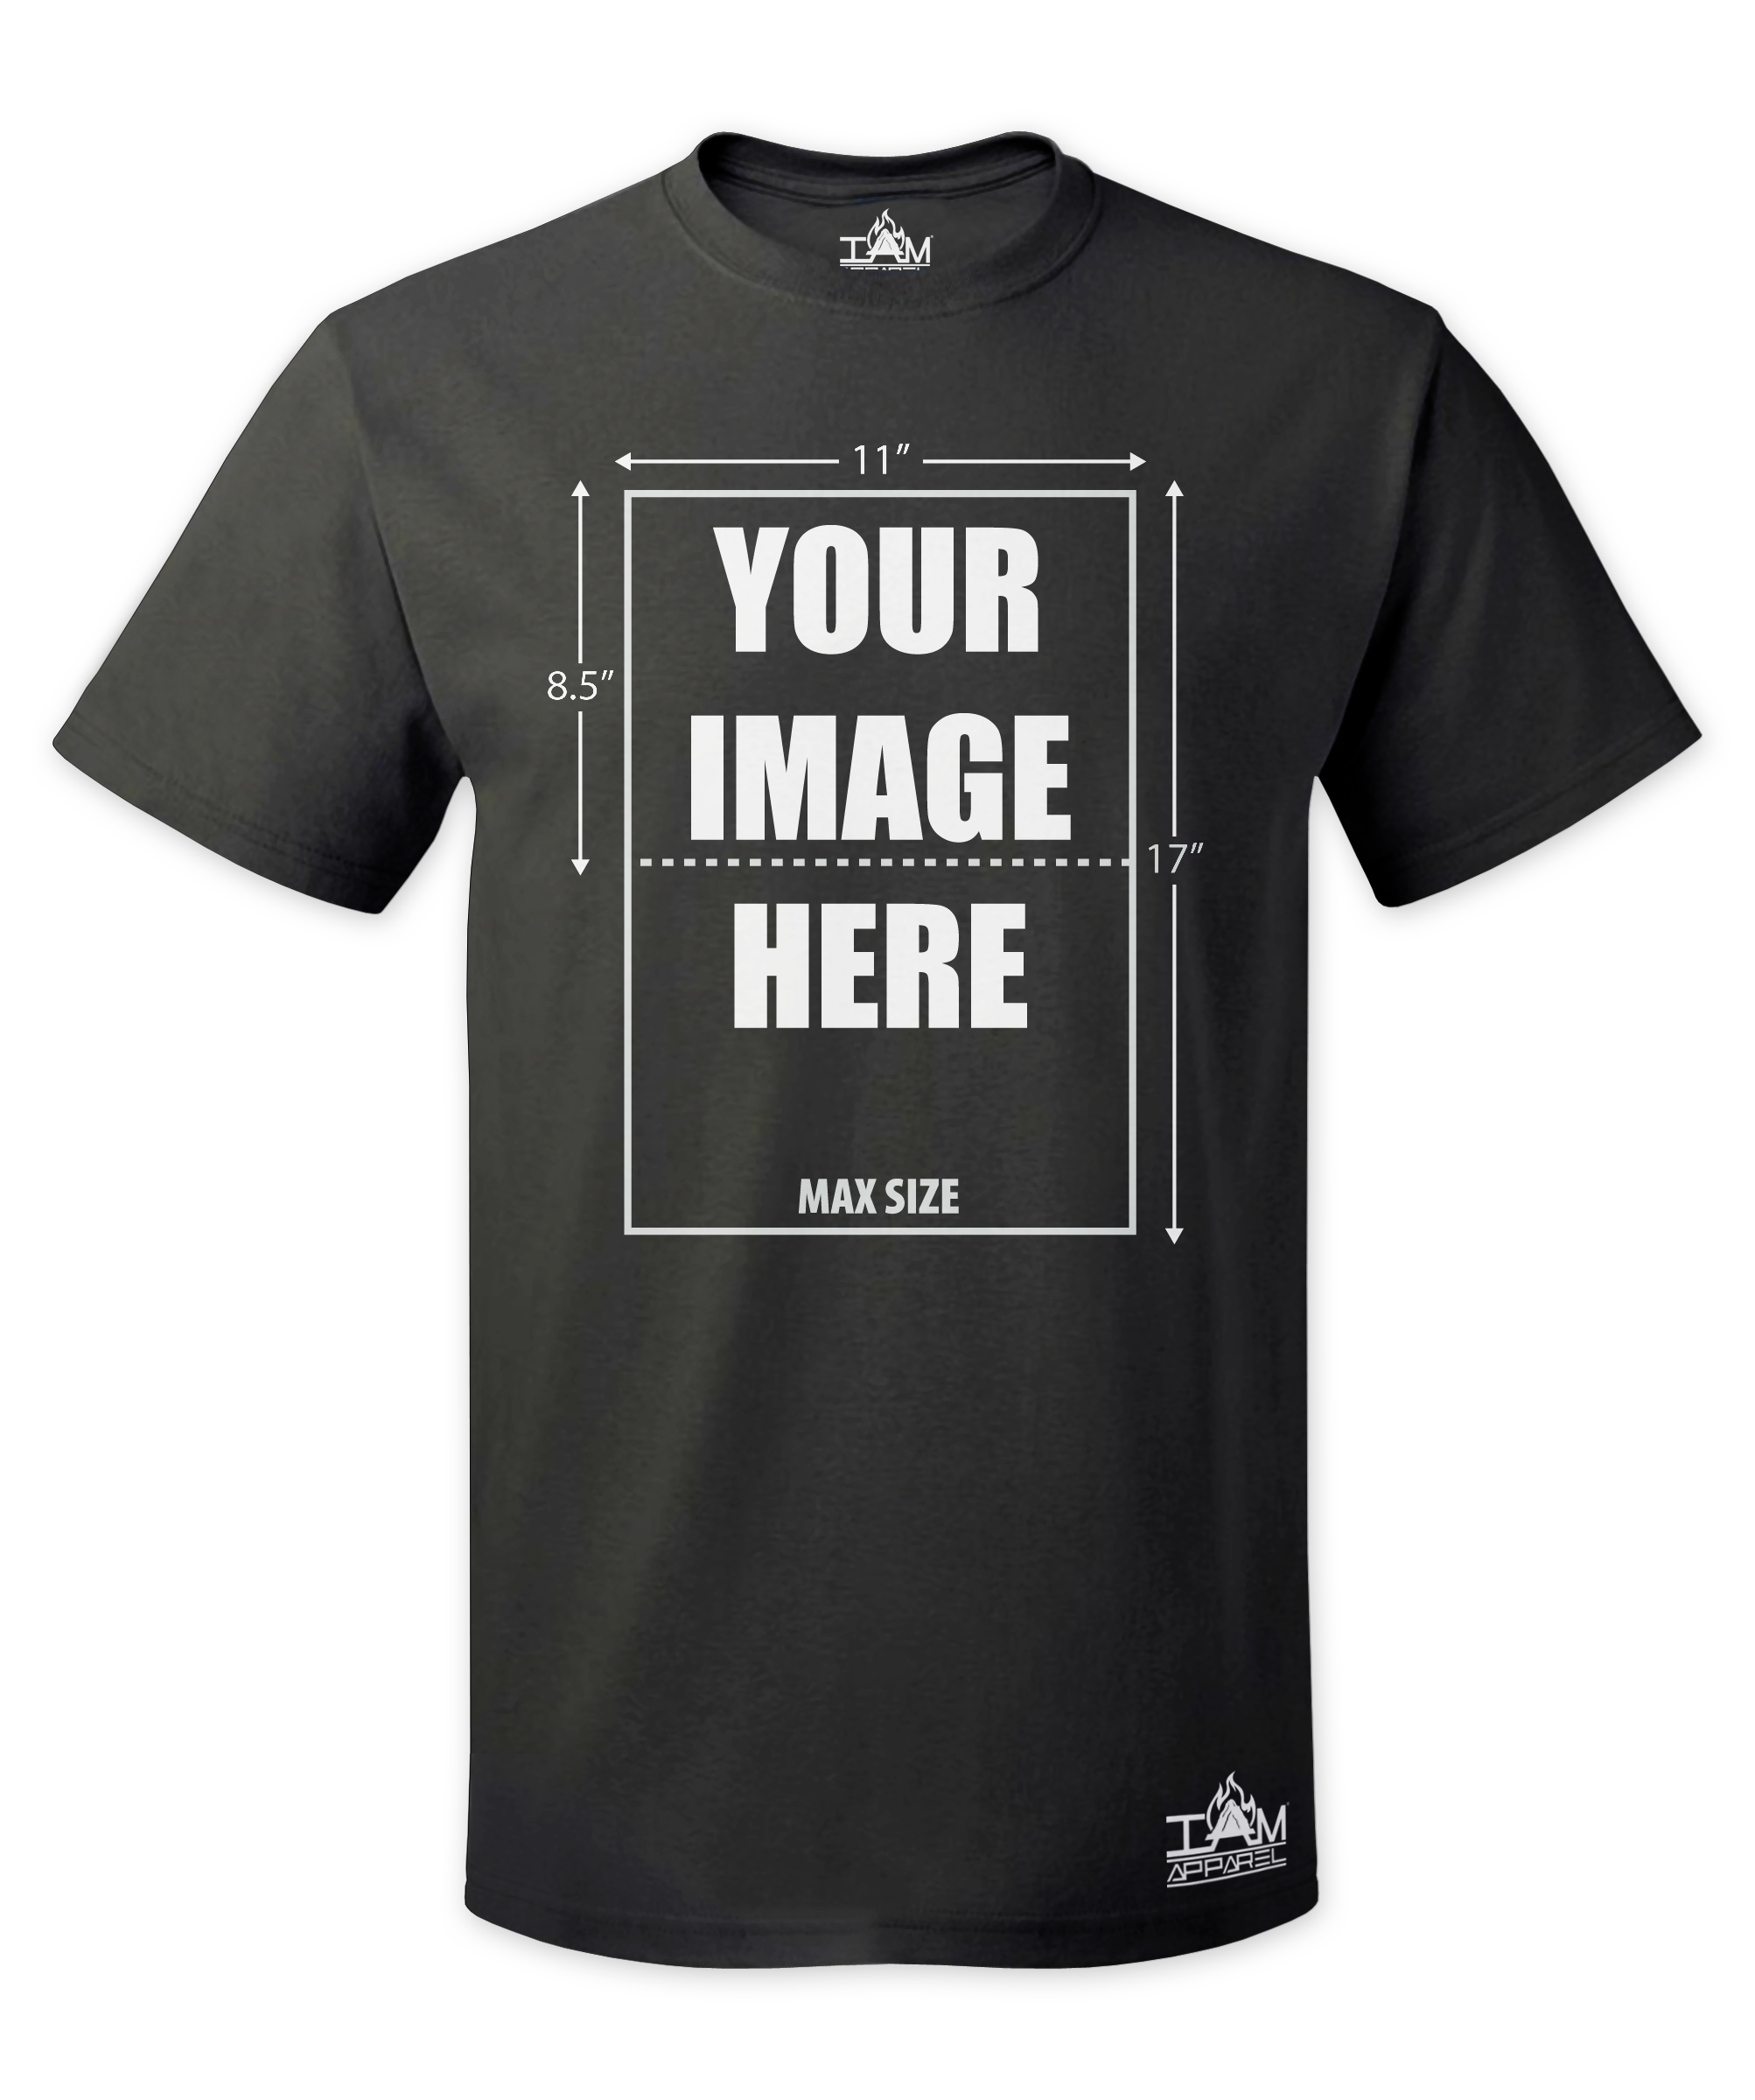 Personalized Men's Short Sleeved T-shirt